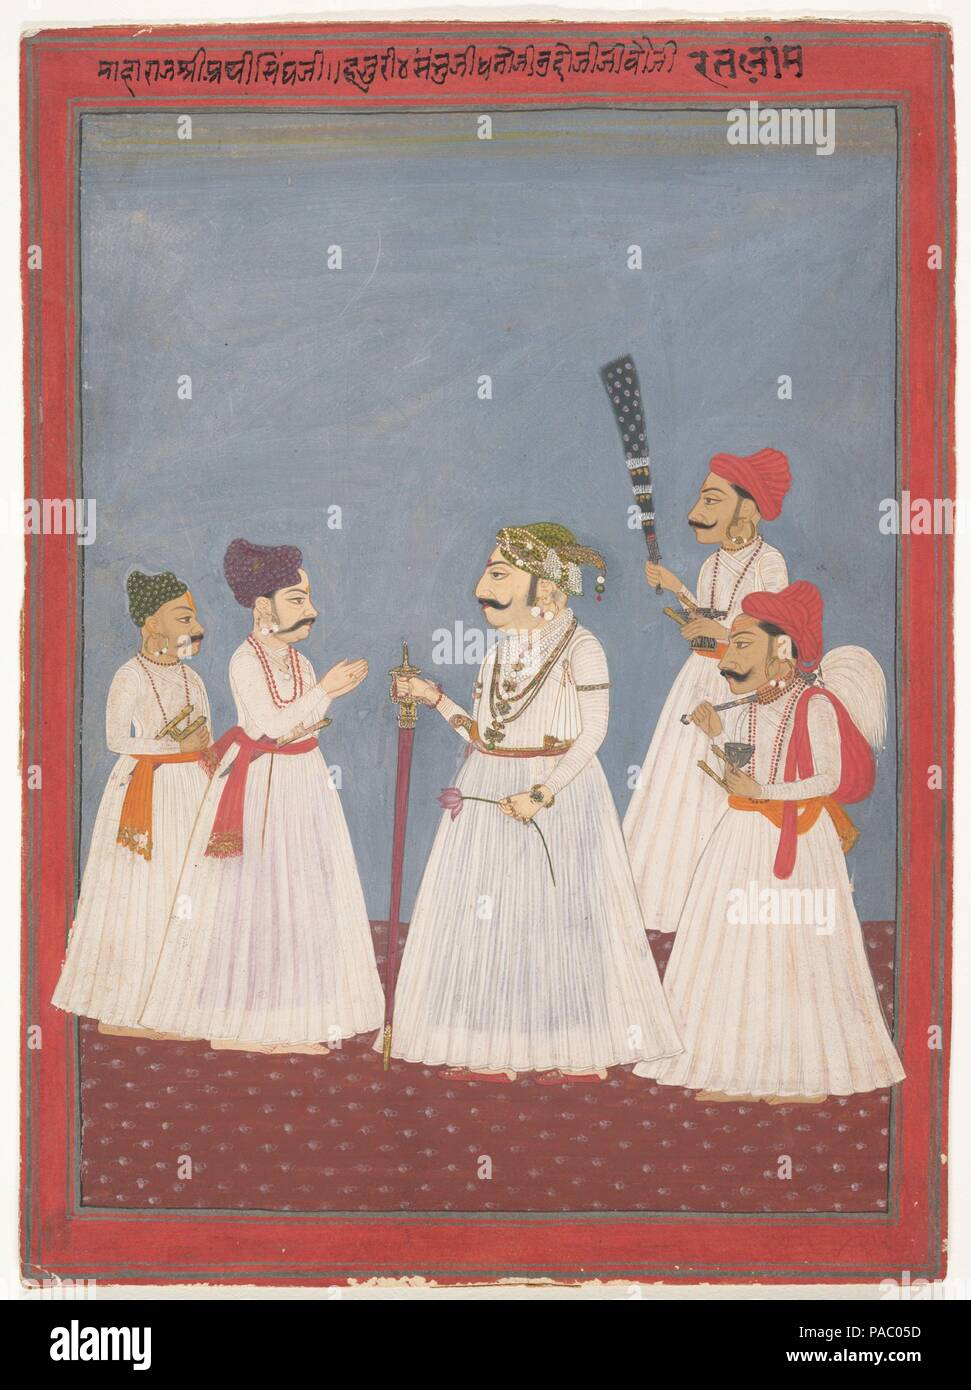 Prince with Four Attendants. Artist: Sri Prathi Singh of Ratlam (Indian). Culture: India (Rajasthan). Dimensions: Overall: 11 9/16 x 8 9/16 in. (29.4 x 21.8cm). Date: late 18th-early 19th century. Museum: Metropolitan Museum of Art, New York, USA. - Stock Image